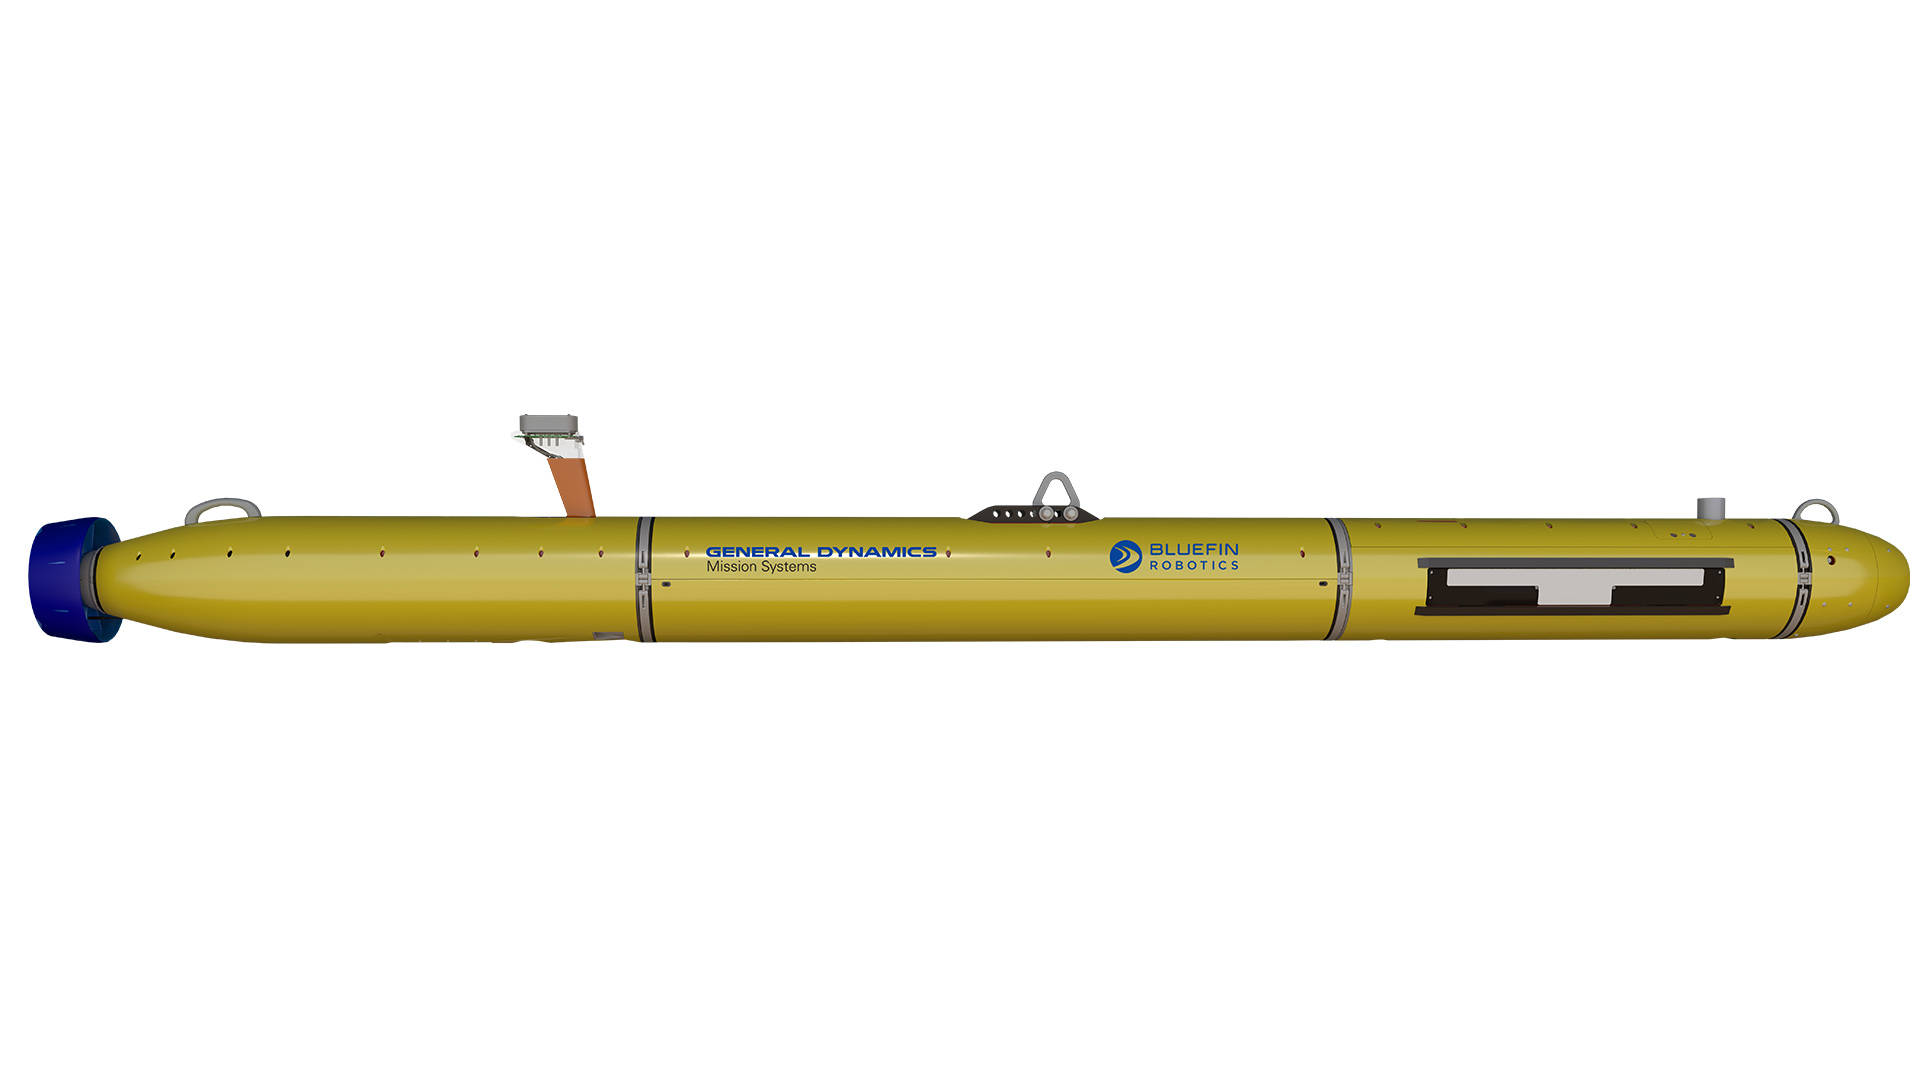 Bluefin-12 UUV Product Cut Out Grid